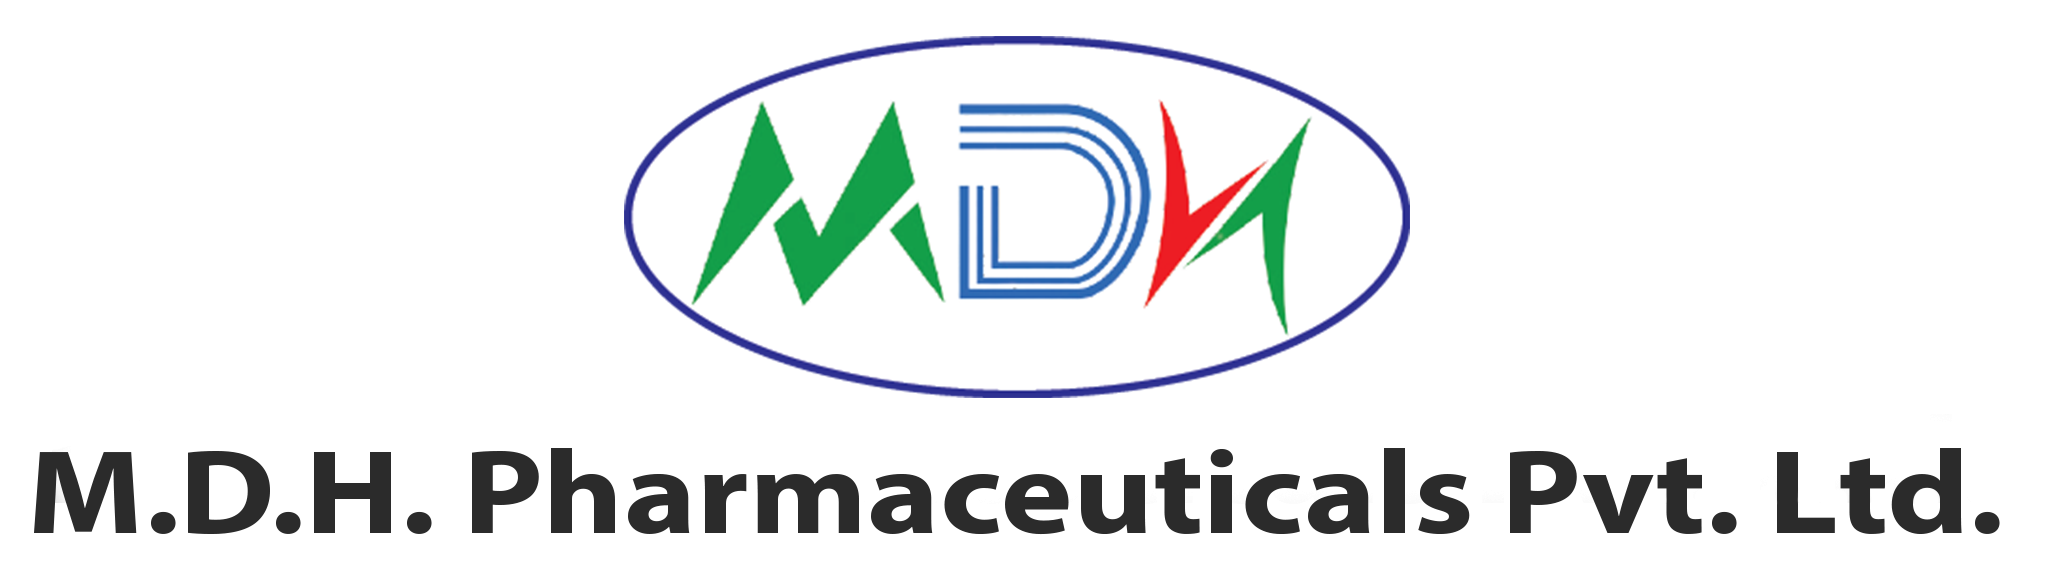 cropped-md-logo.png